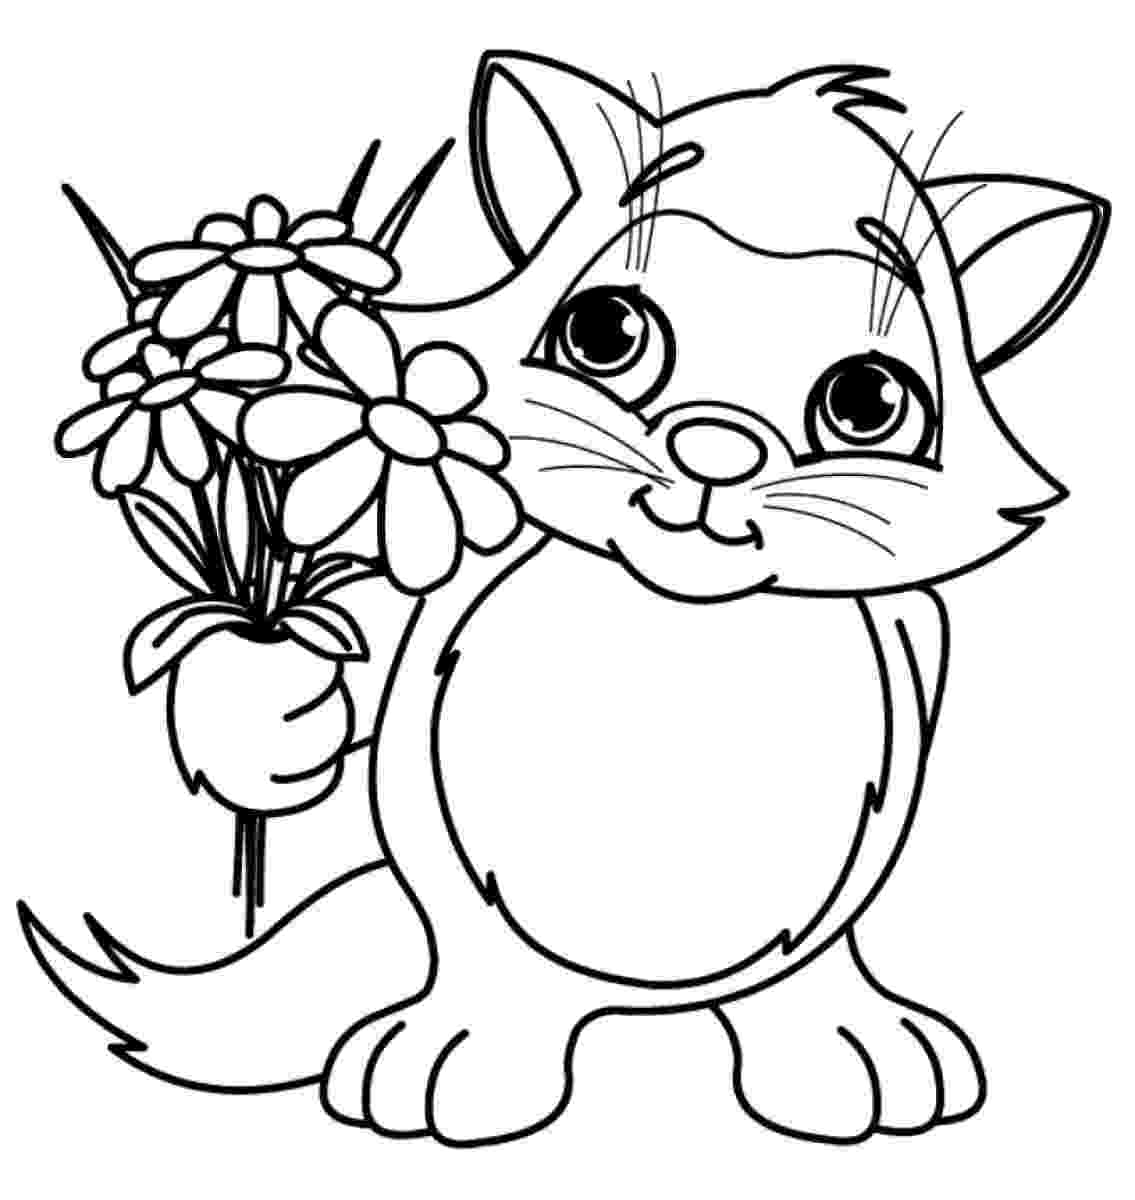 flower coloring pages beautiful flower coloring pages with delicate forms of flower pages coloring